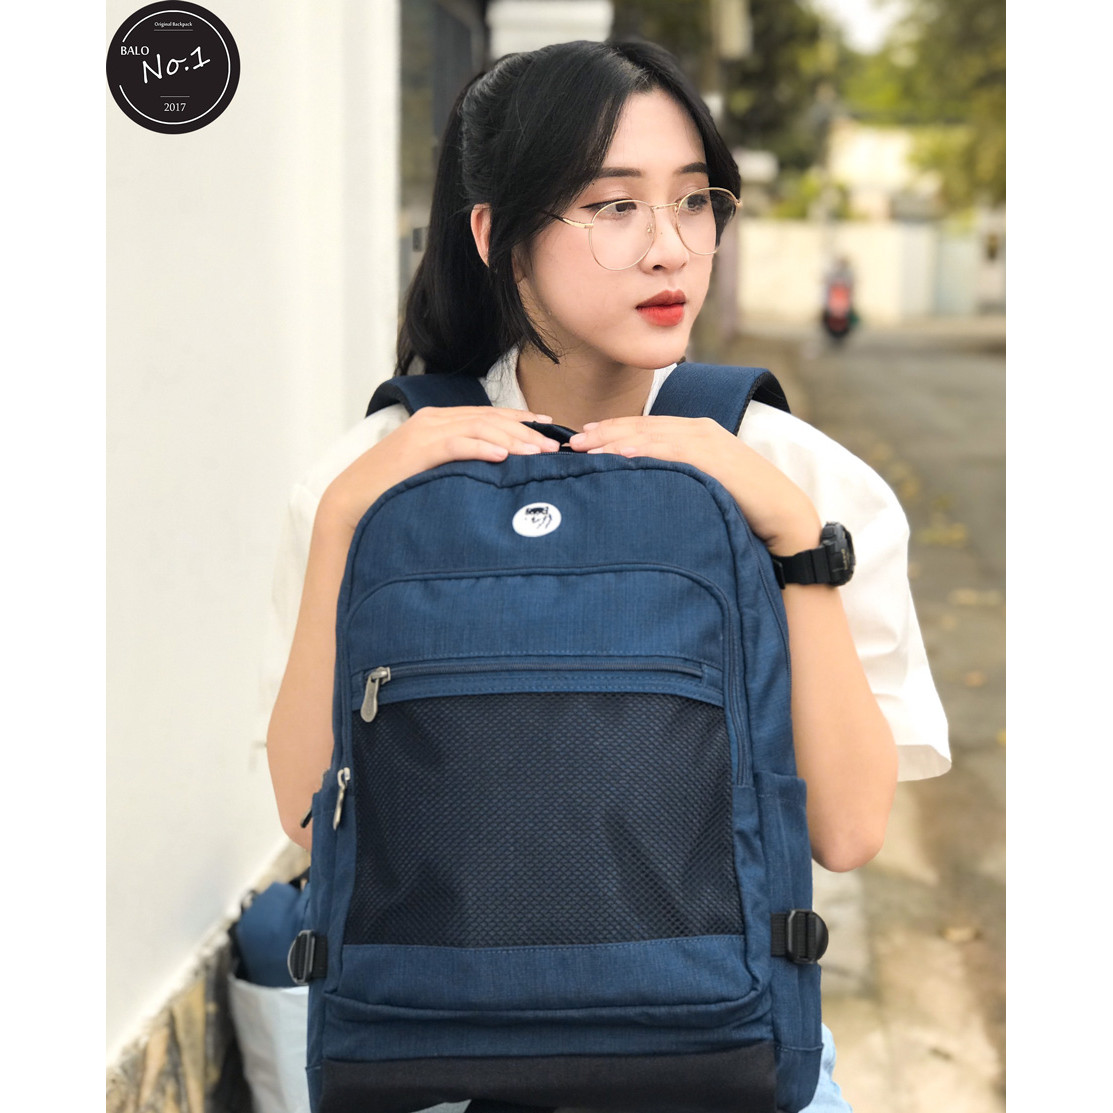 Balo Laptop Cao Cấp Mikkor The Eli Backpack